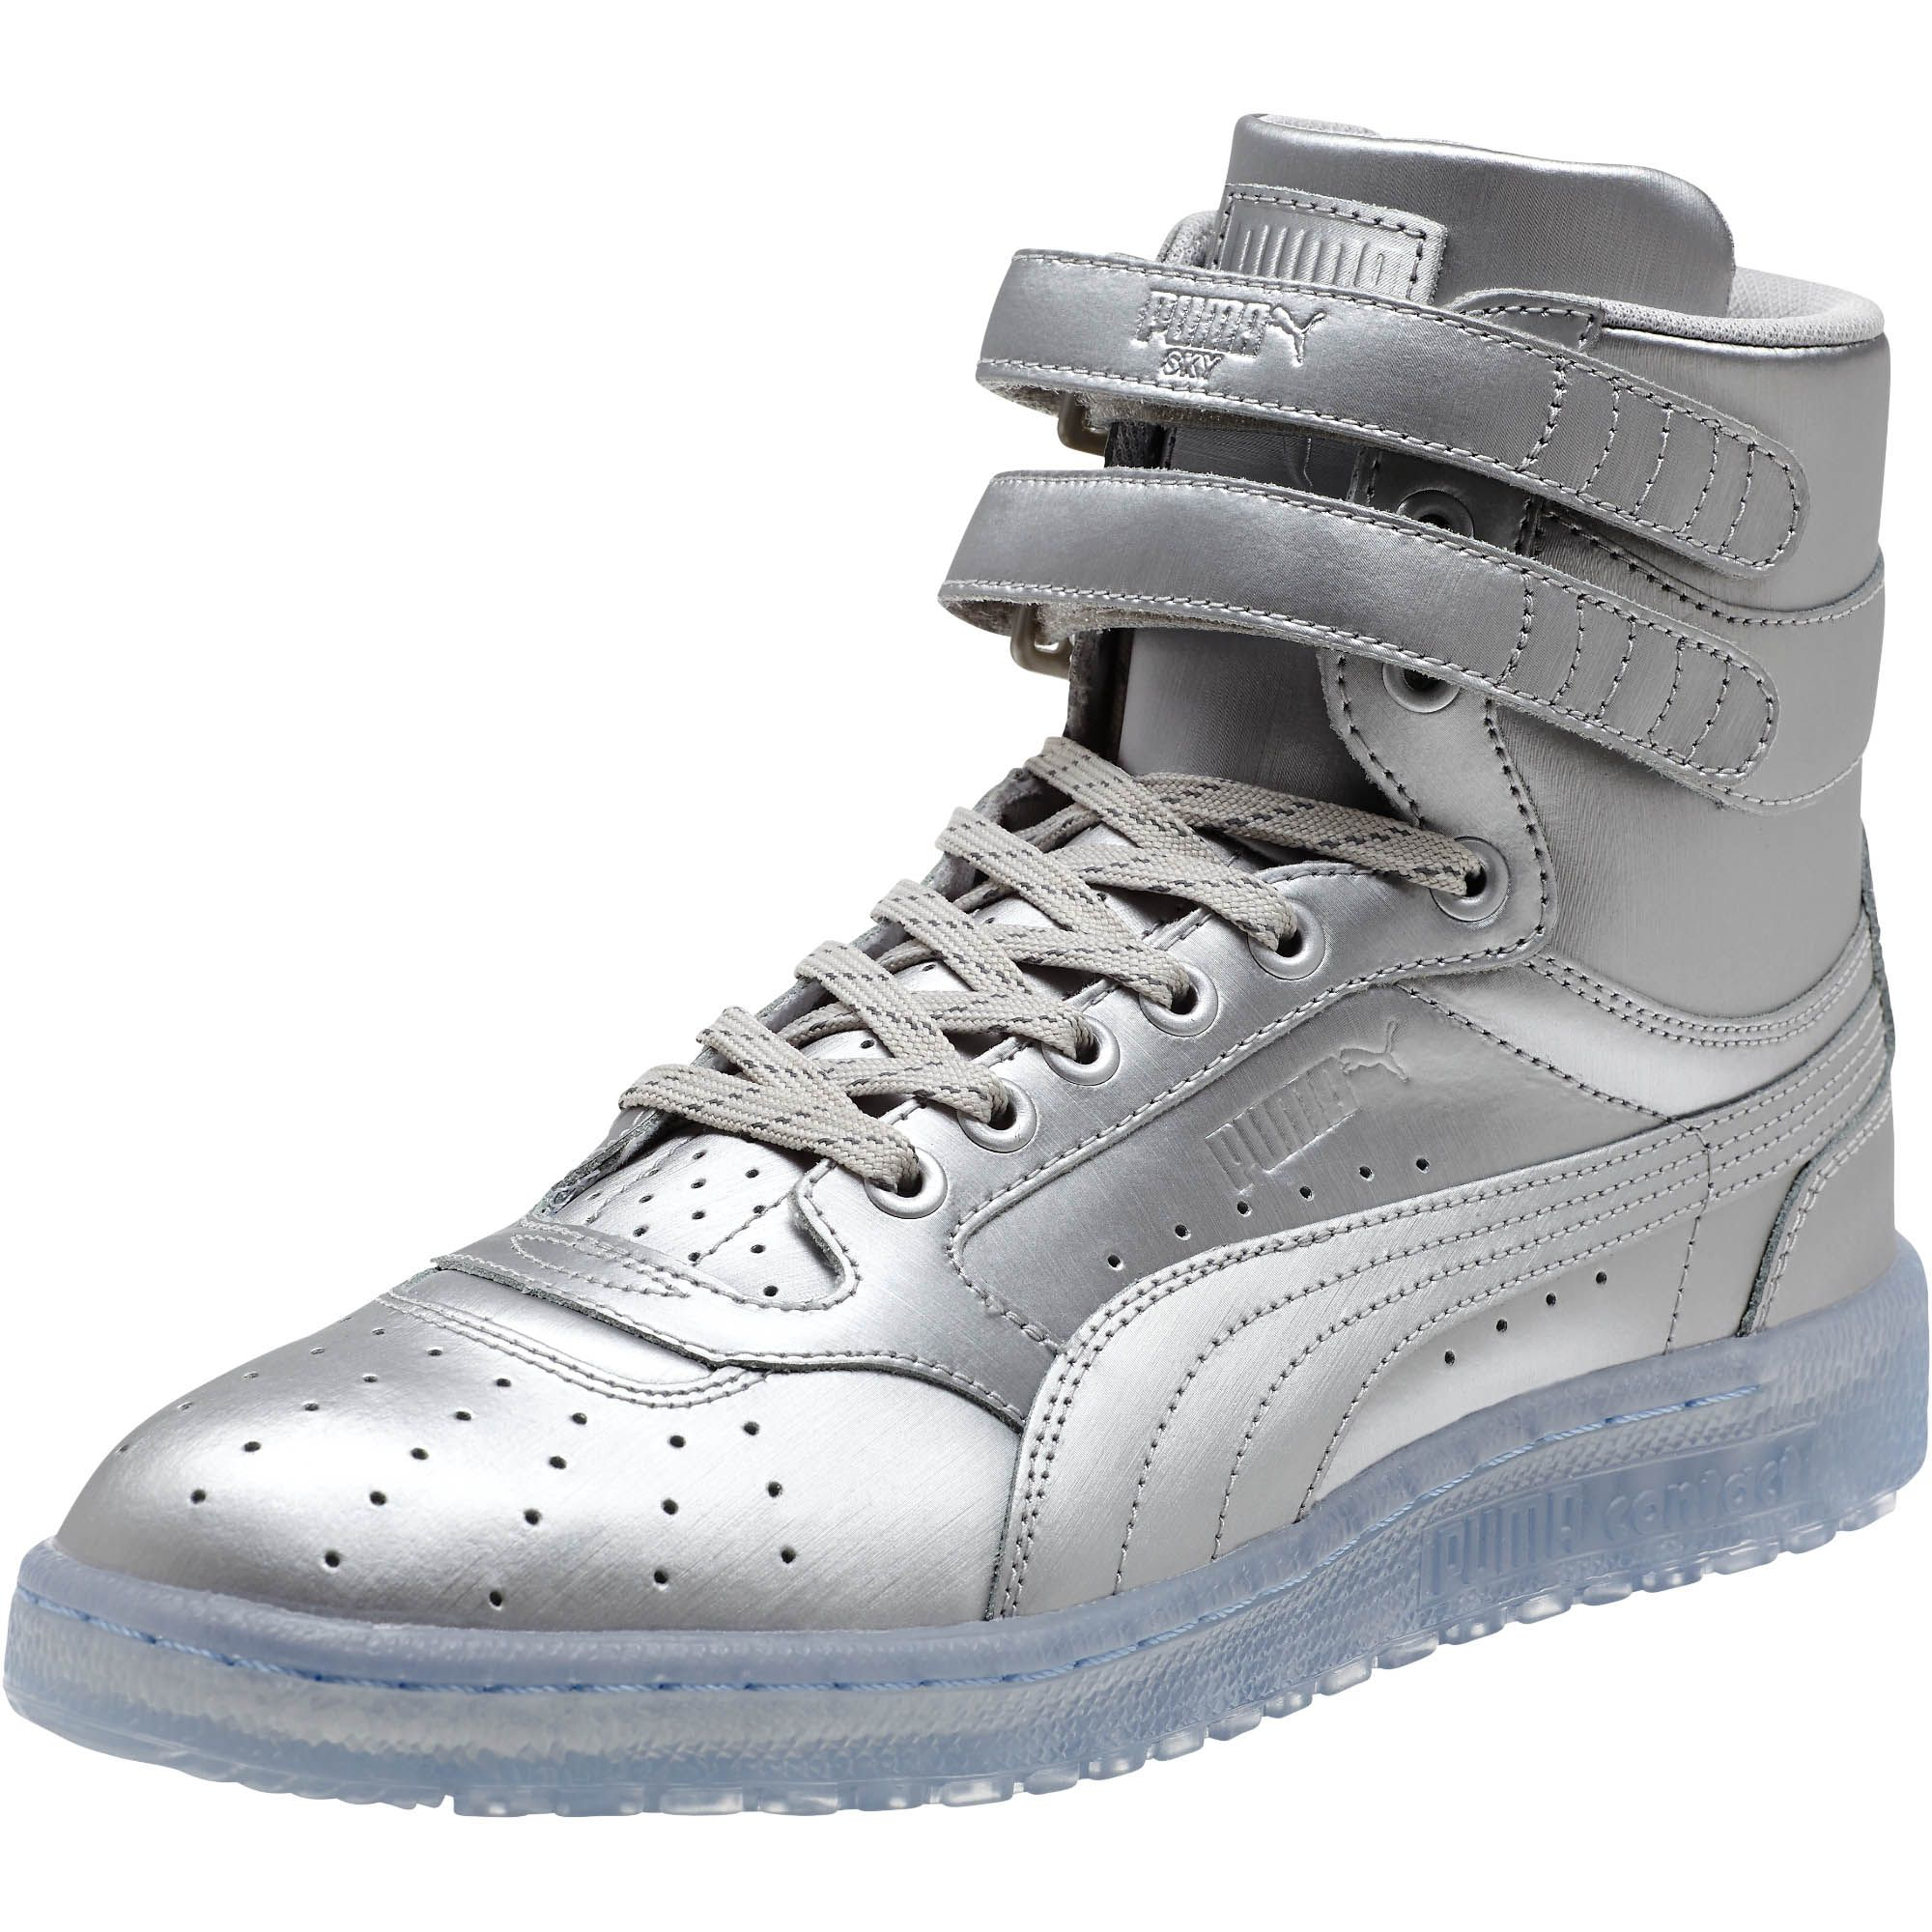 cfa2120672d8 Lyst - PUMA Sky Ii Hi Platinum Men s Sneakers in Metallic for Men